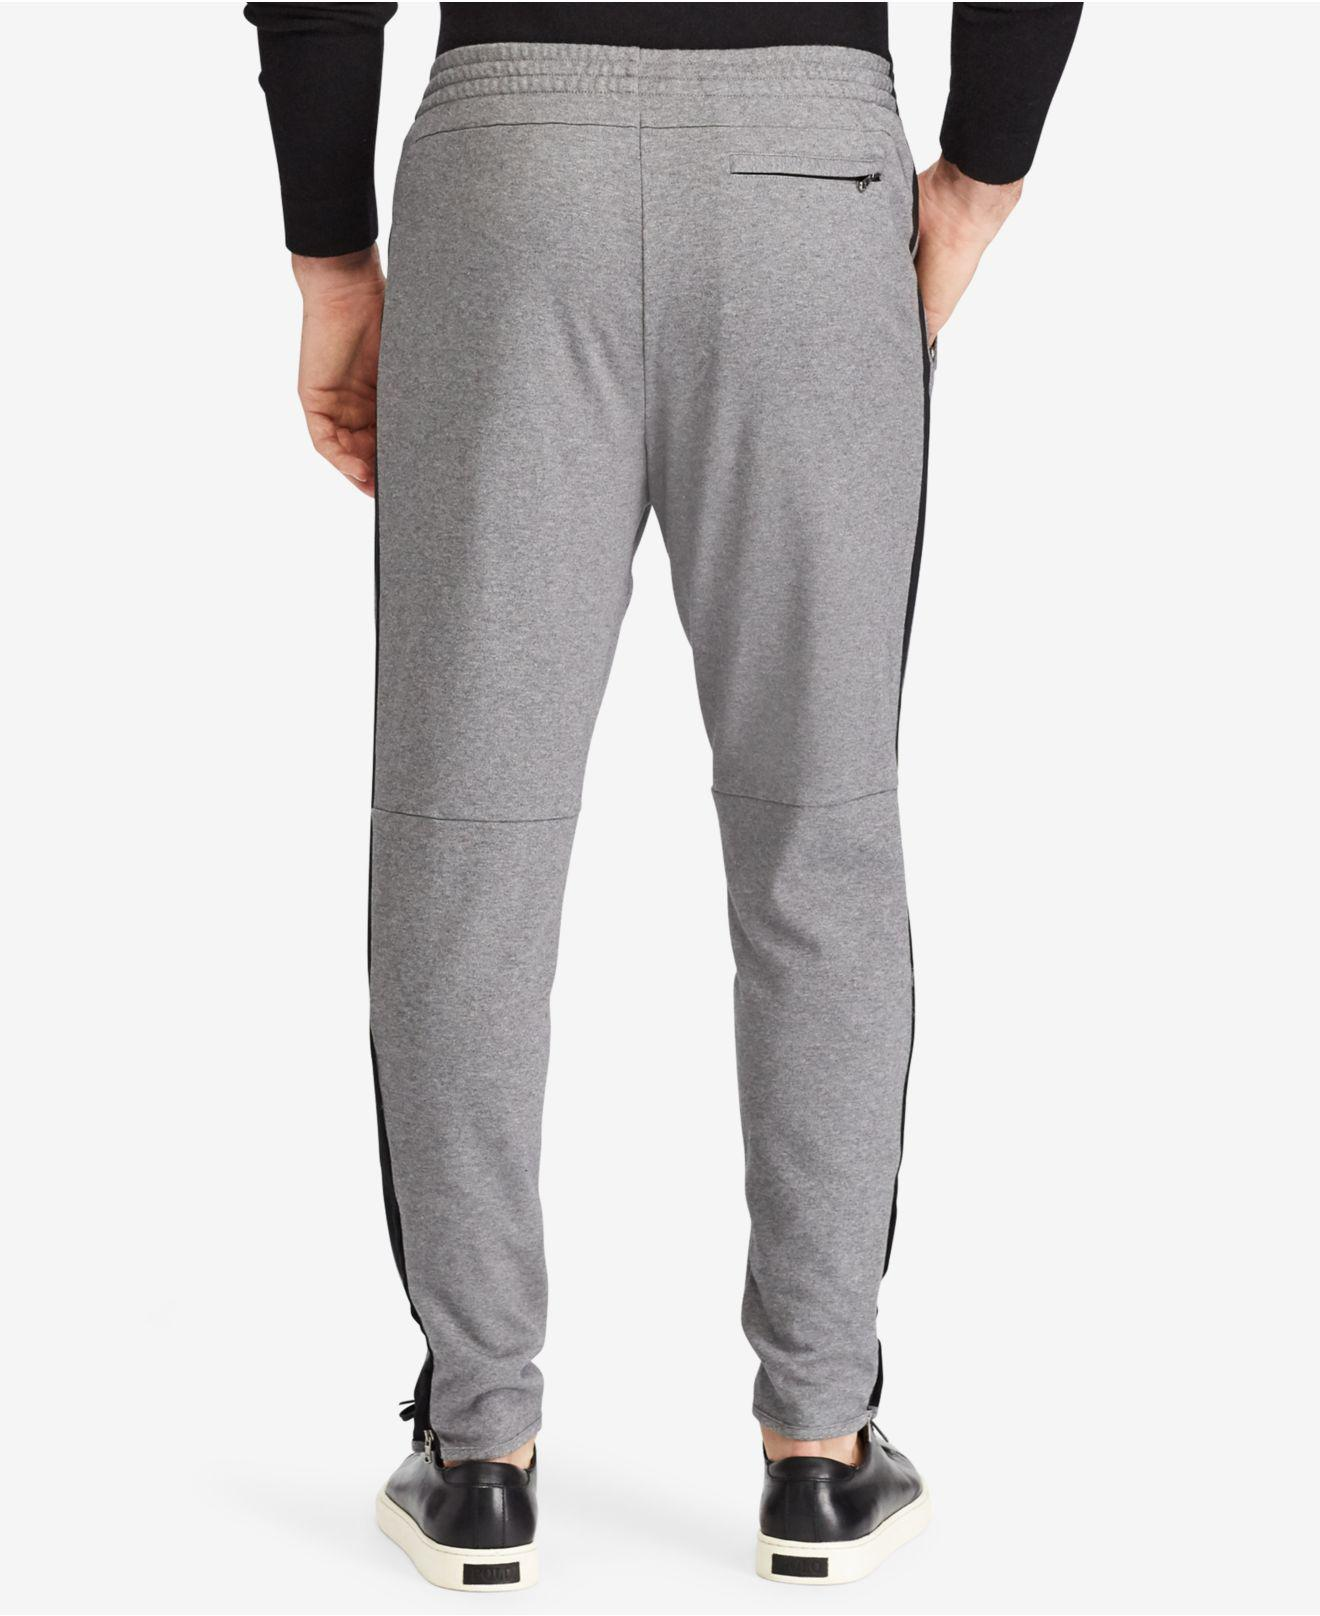 49447080359c Lyst - Polo Ralph Lauren Knit Cotton Track Pants in Gray for Men